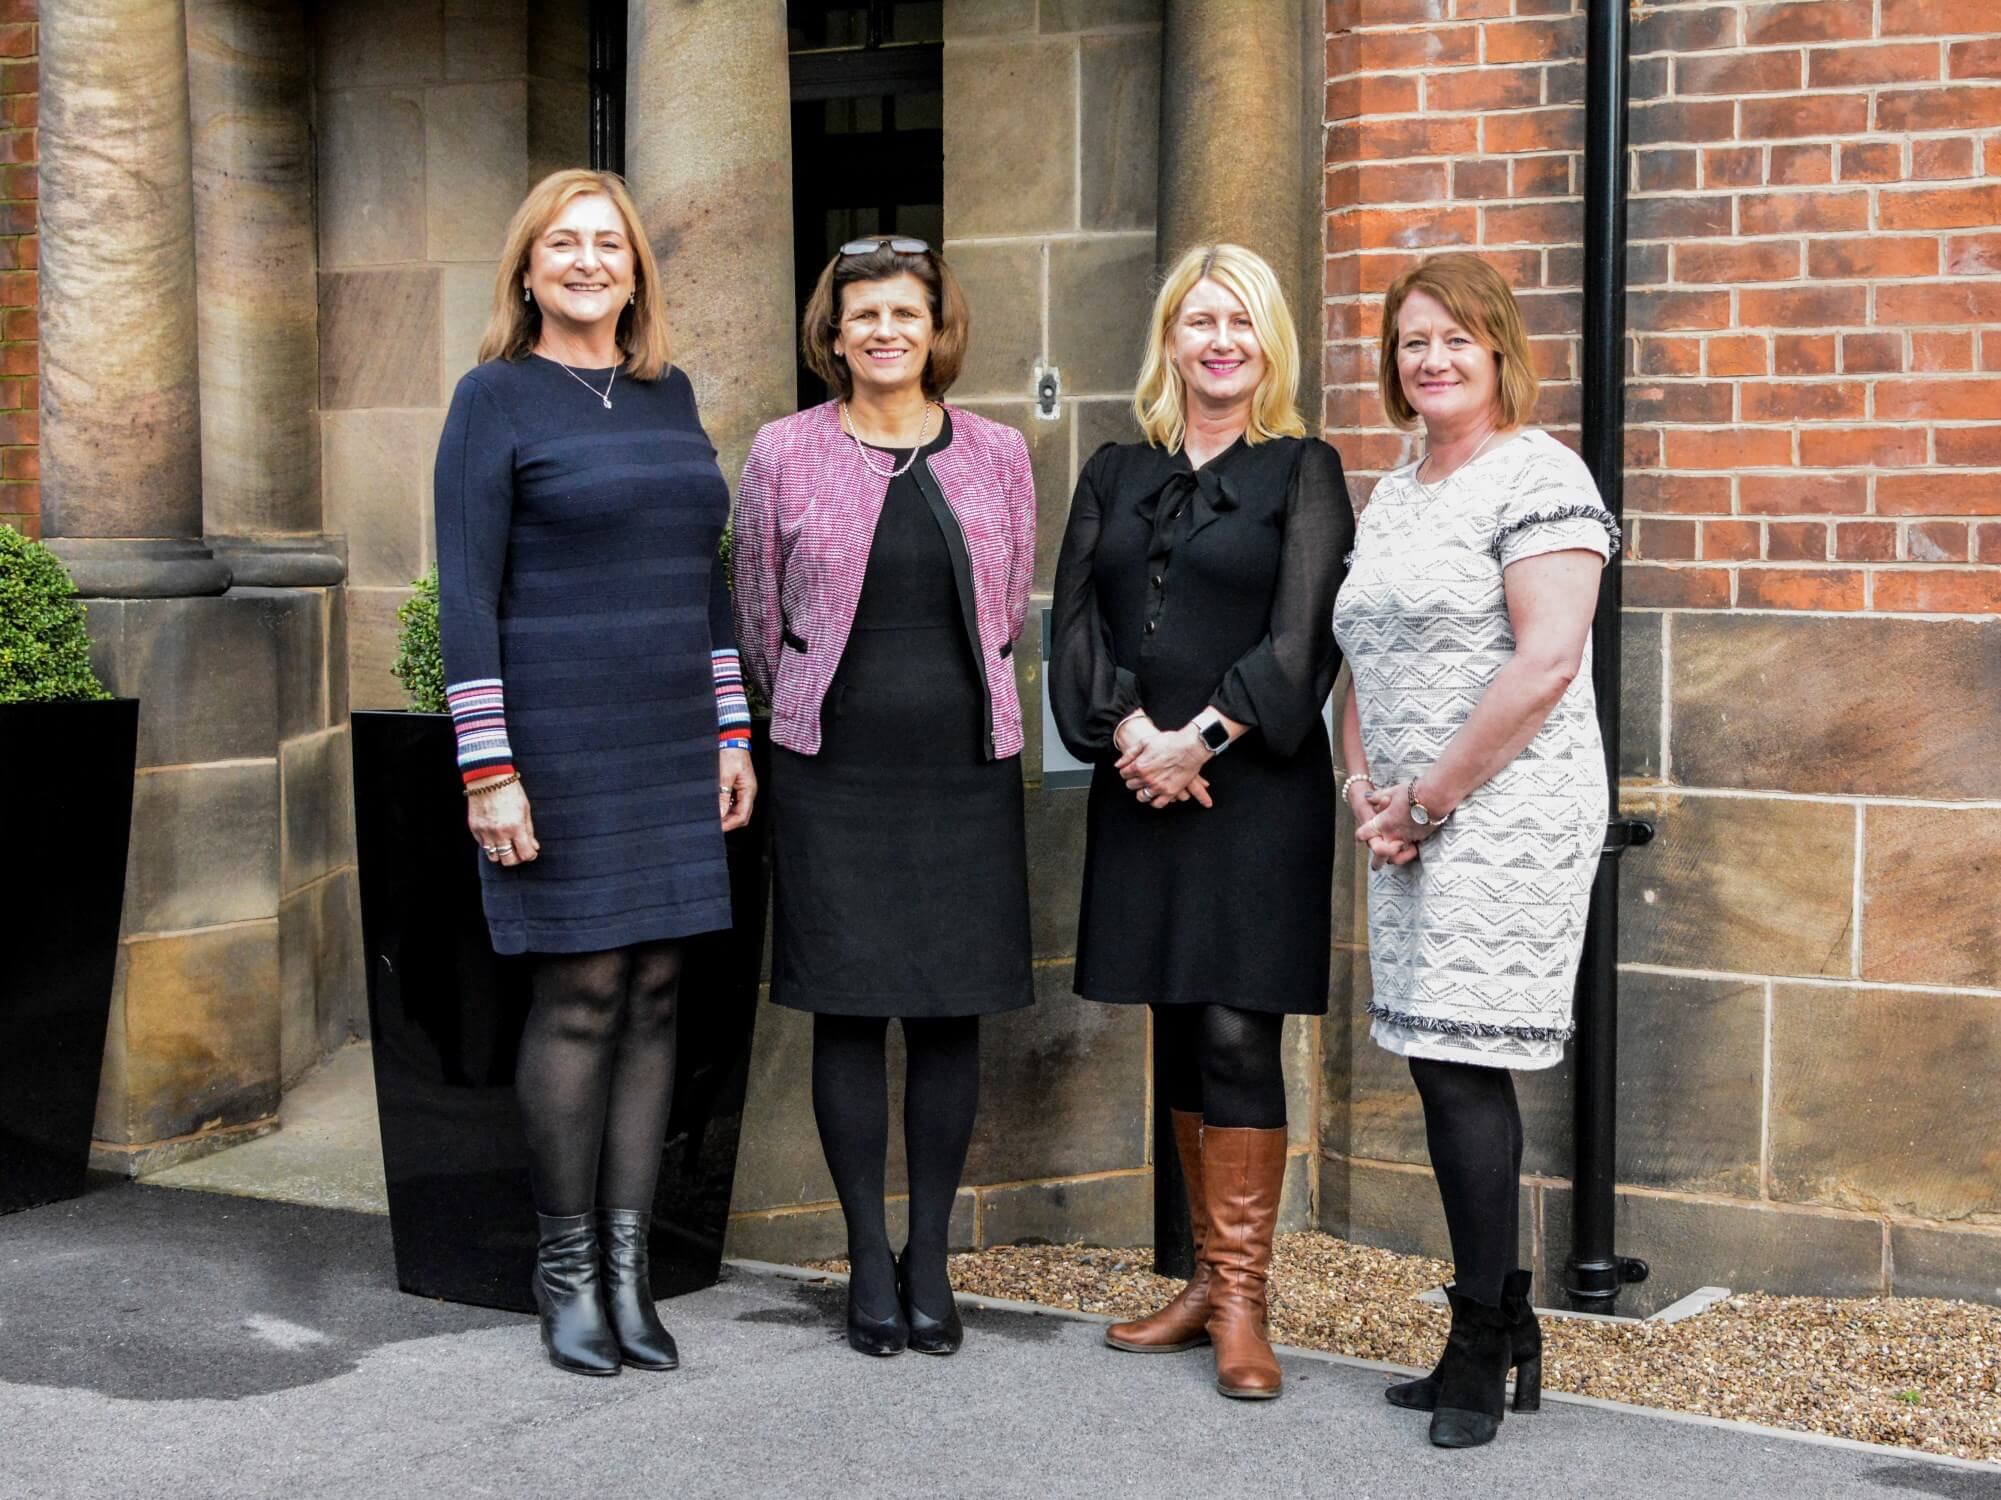 From left, Jacqui Willis, chief executive of Derbyshire Voluntary Action, Professor Kathryn Mitchell, Vice-Chancellor of the University of Derby, Heather Fawbert, Chair of Derbyshire Voluntary Action, and Michelle Brown, Head of Adult Nursing at the University of Derby.